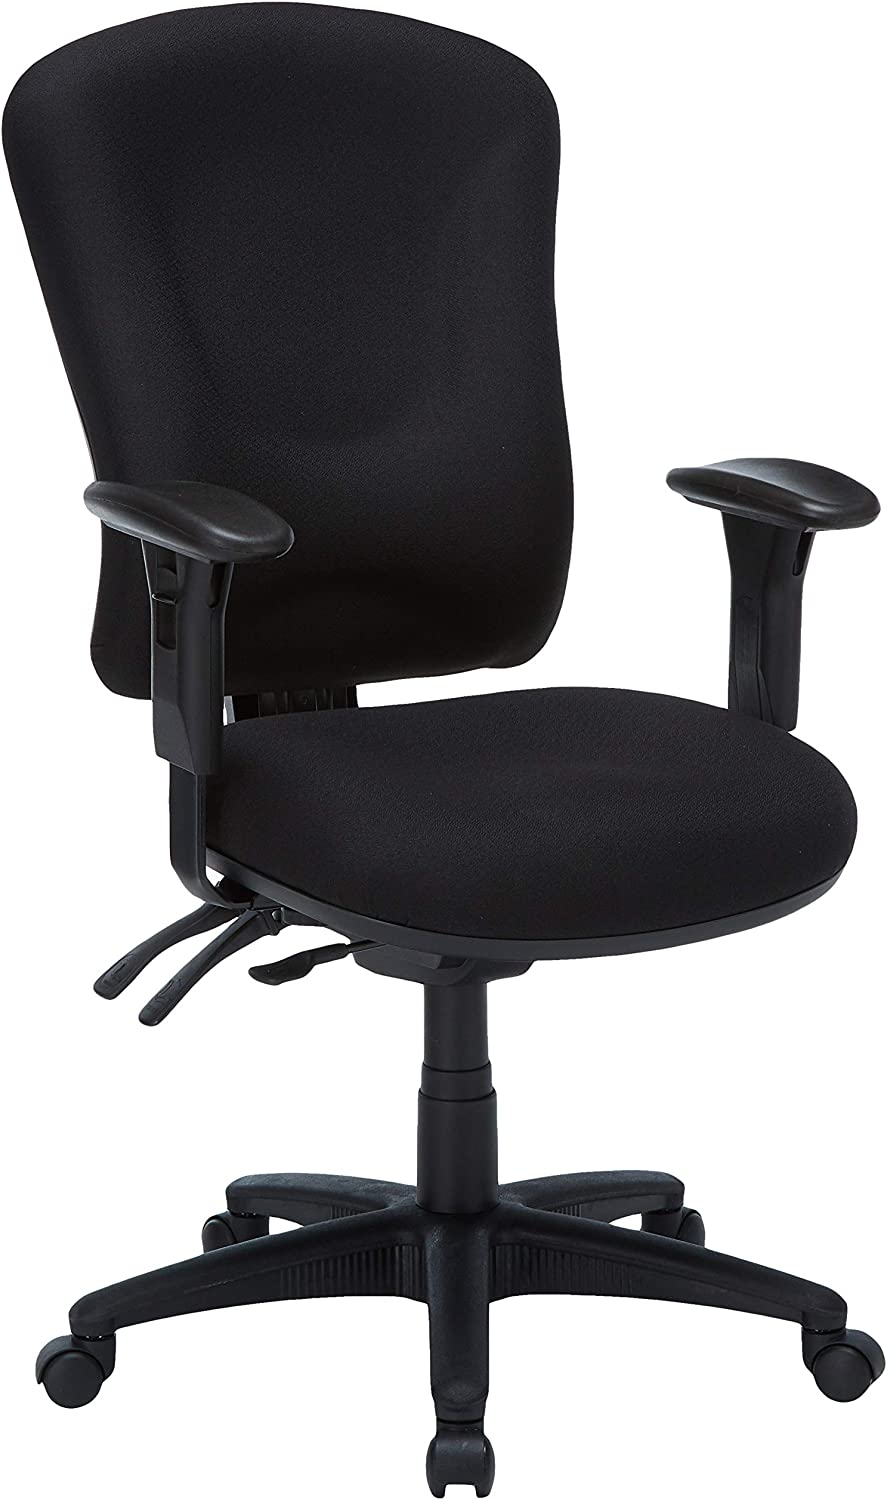 Lorell Managerial Task Chair, 26-3 4 by 26 by 48-1 4-Inch-51-Inch, Black